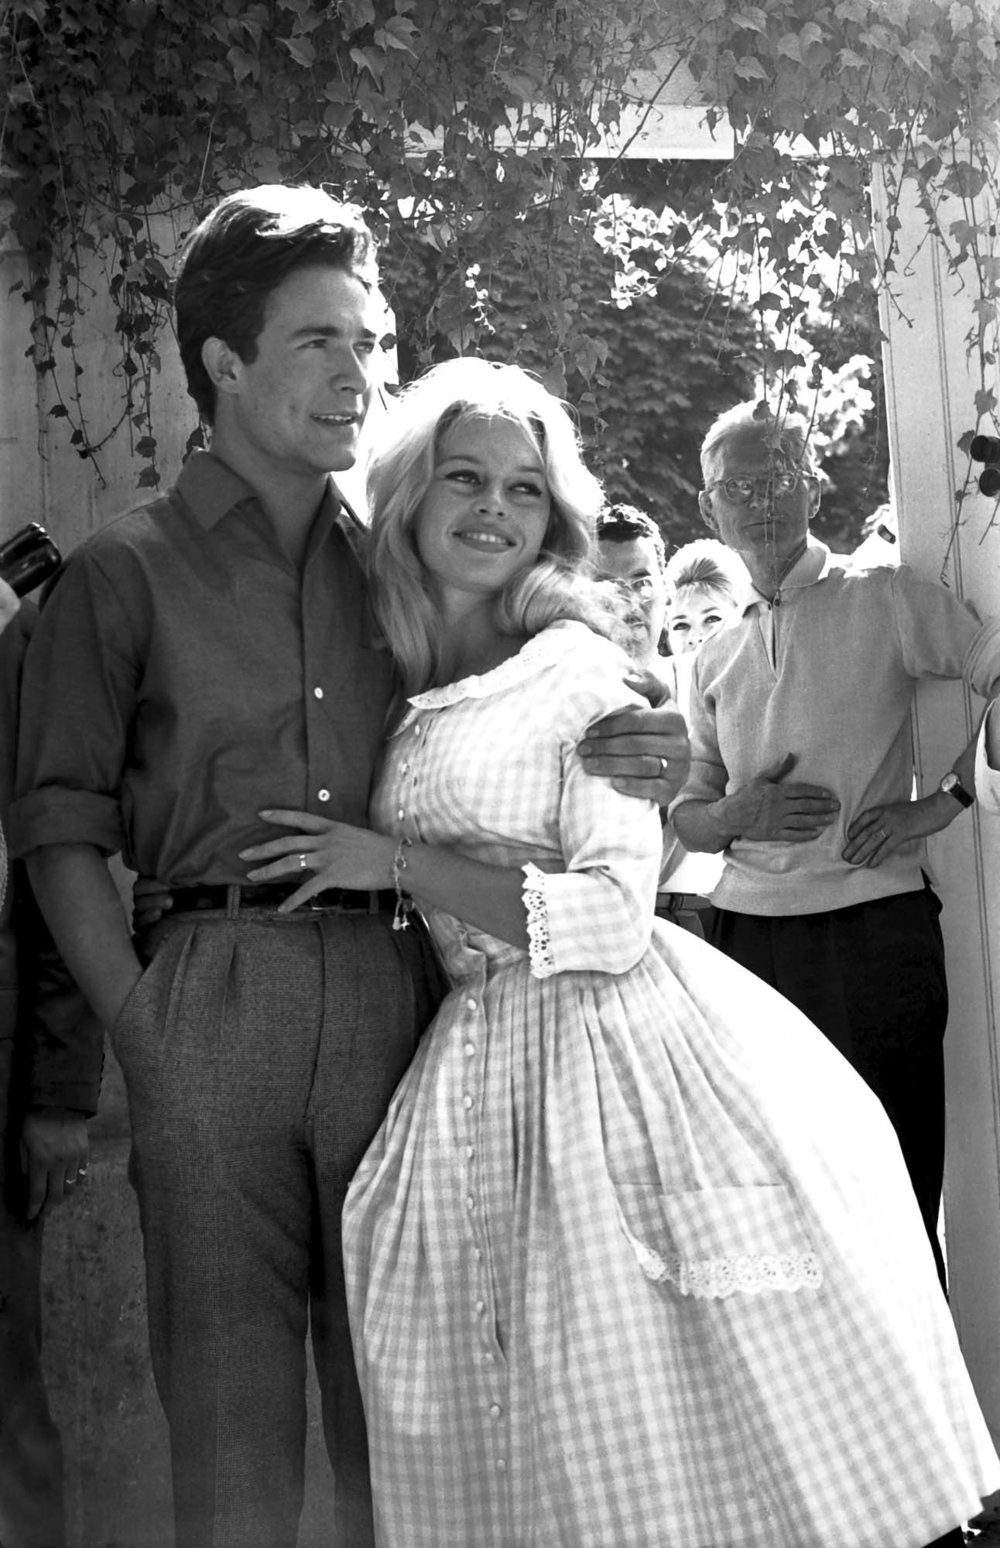 Brigitte Bardot and Jacques Charrier. 1959.